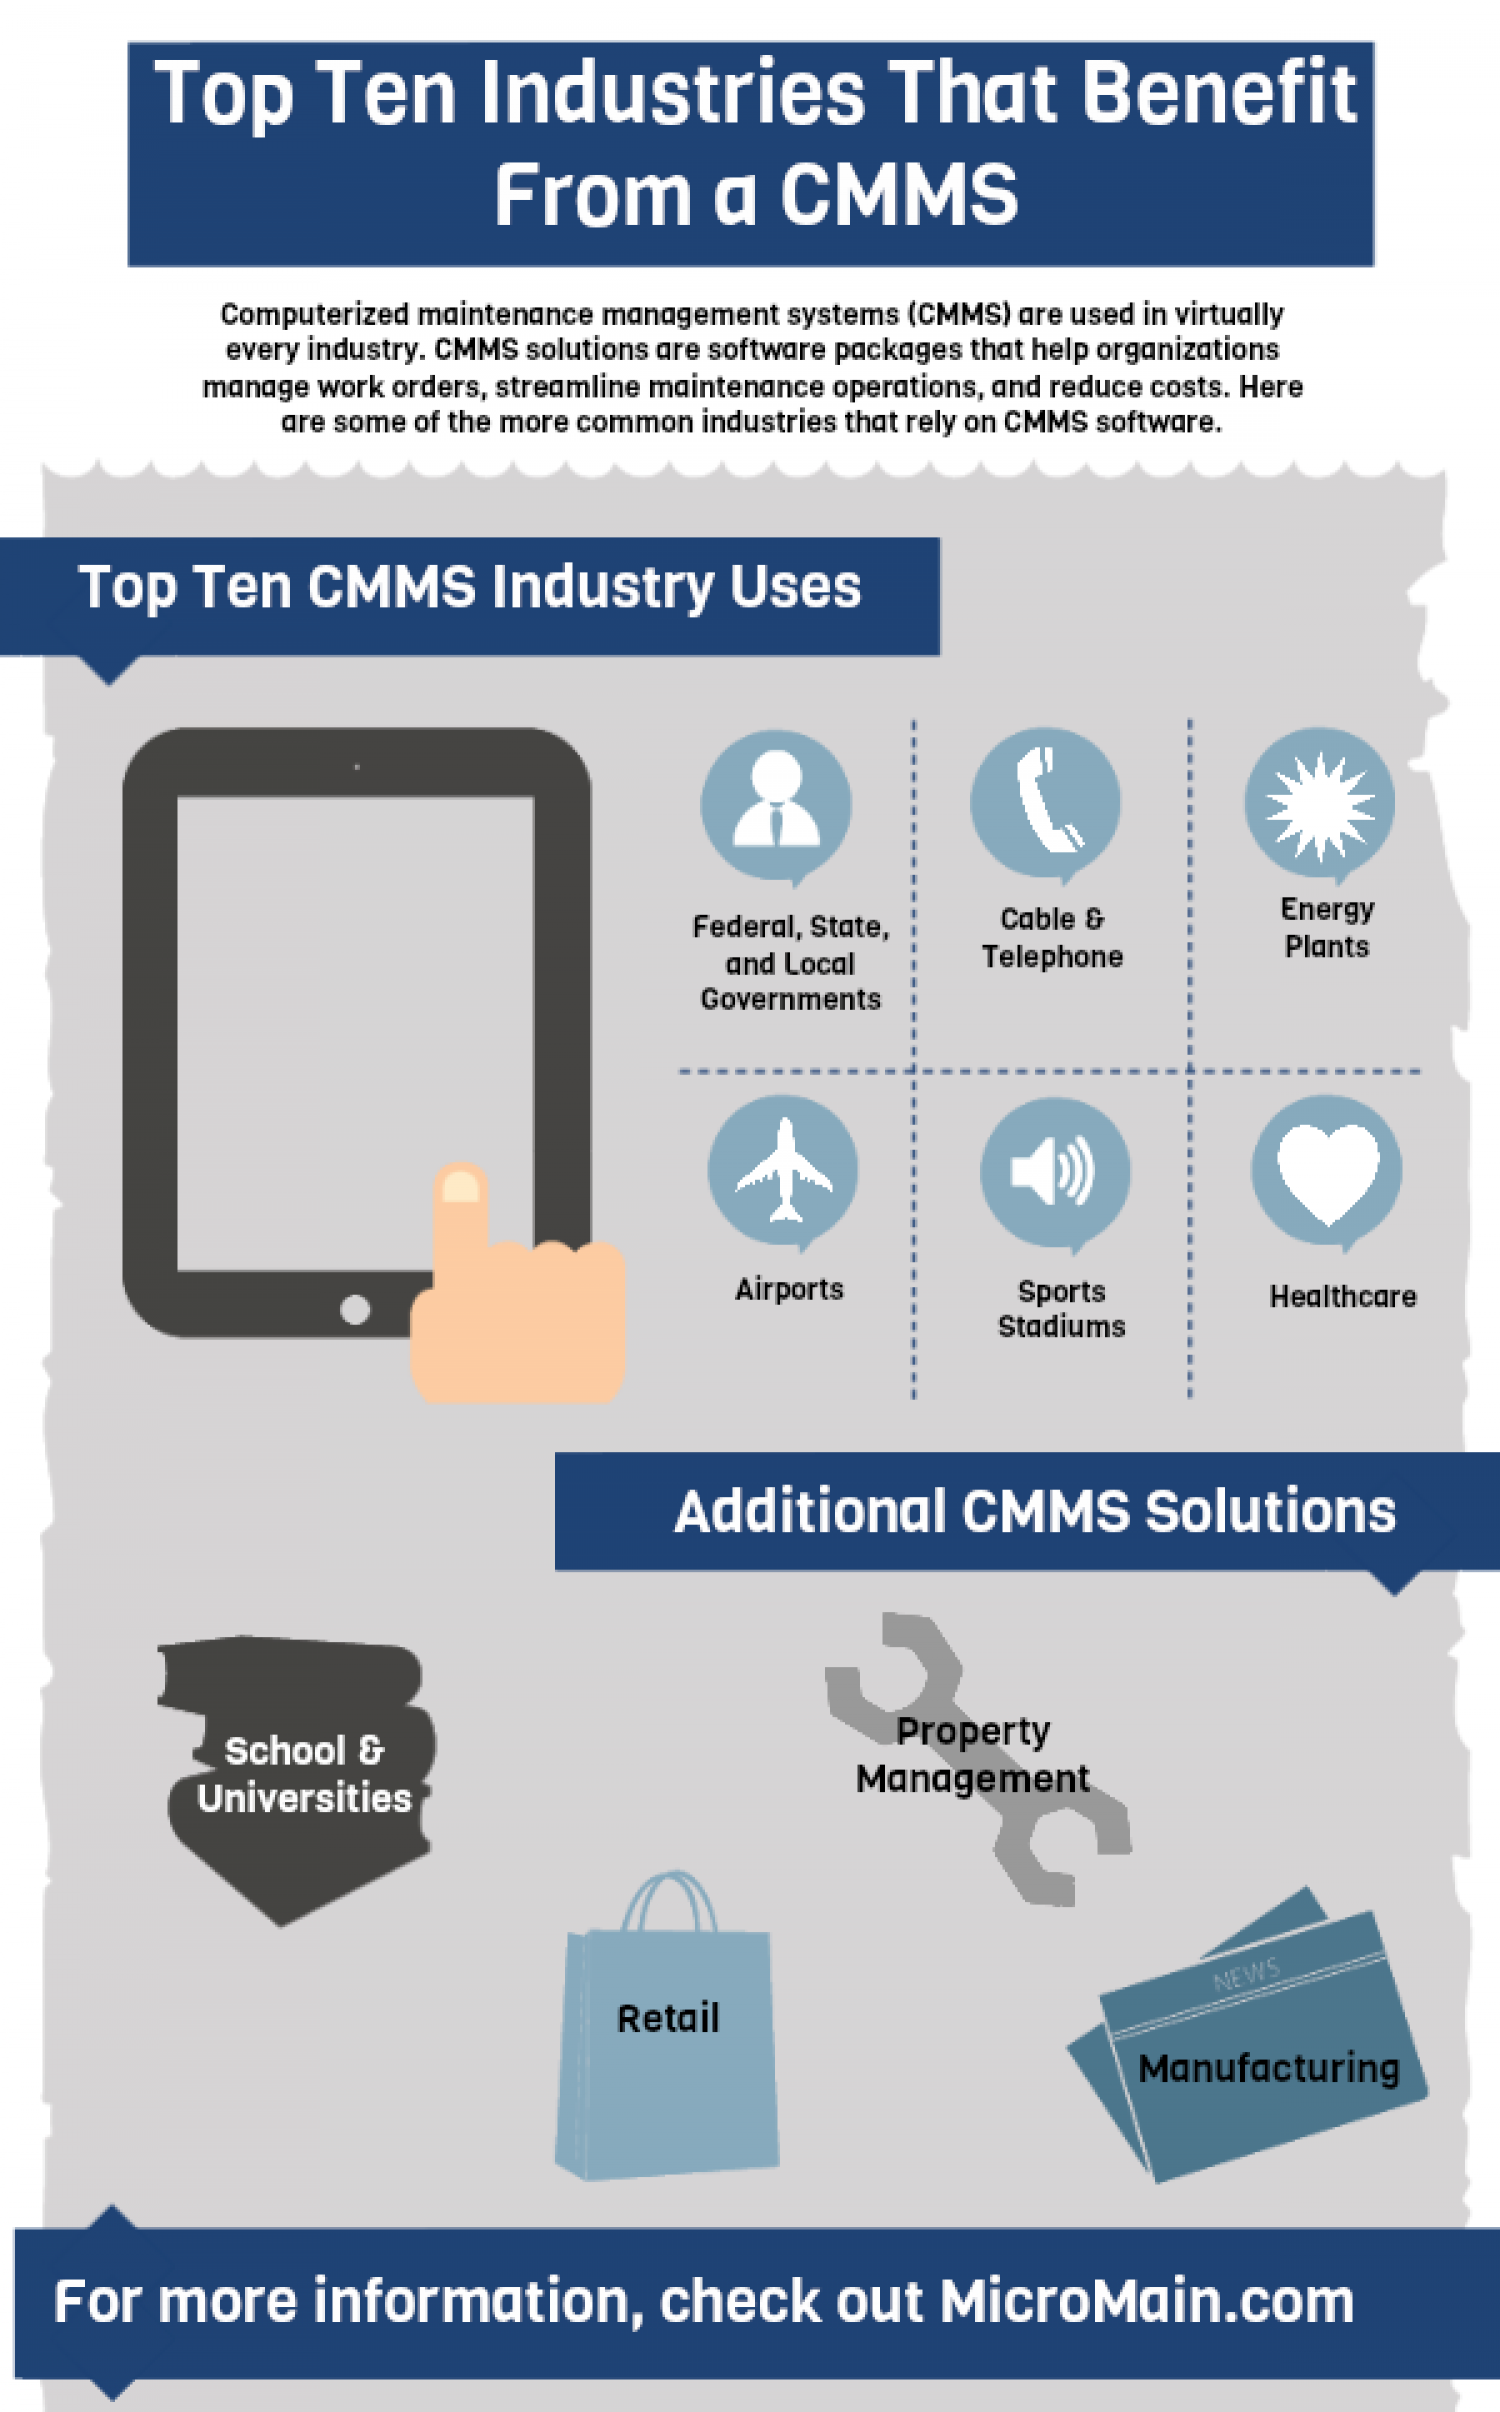 Top Ten Industries That Benefit From a CMMS Infographic